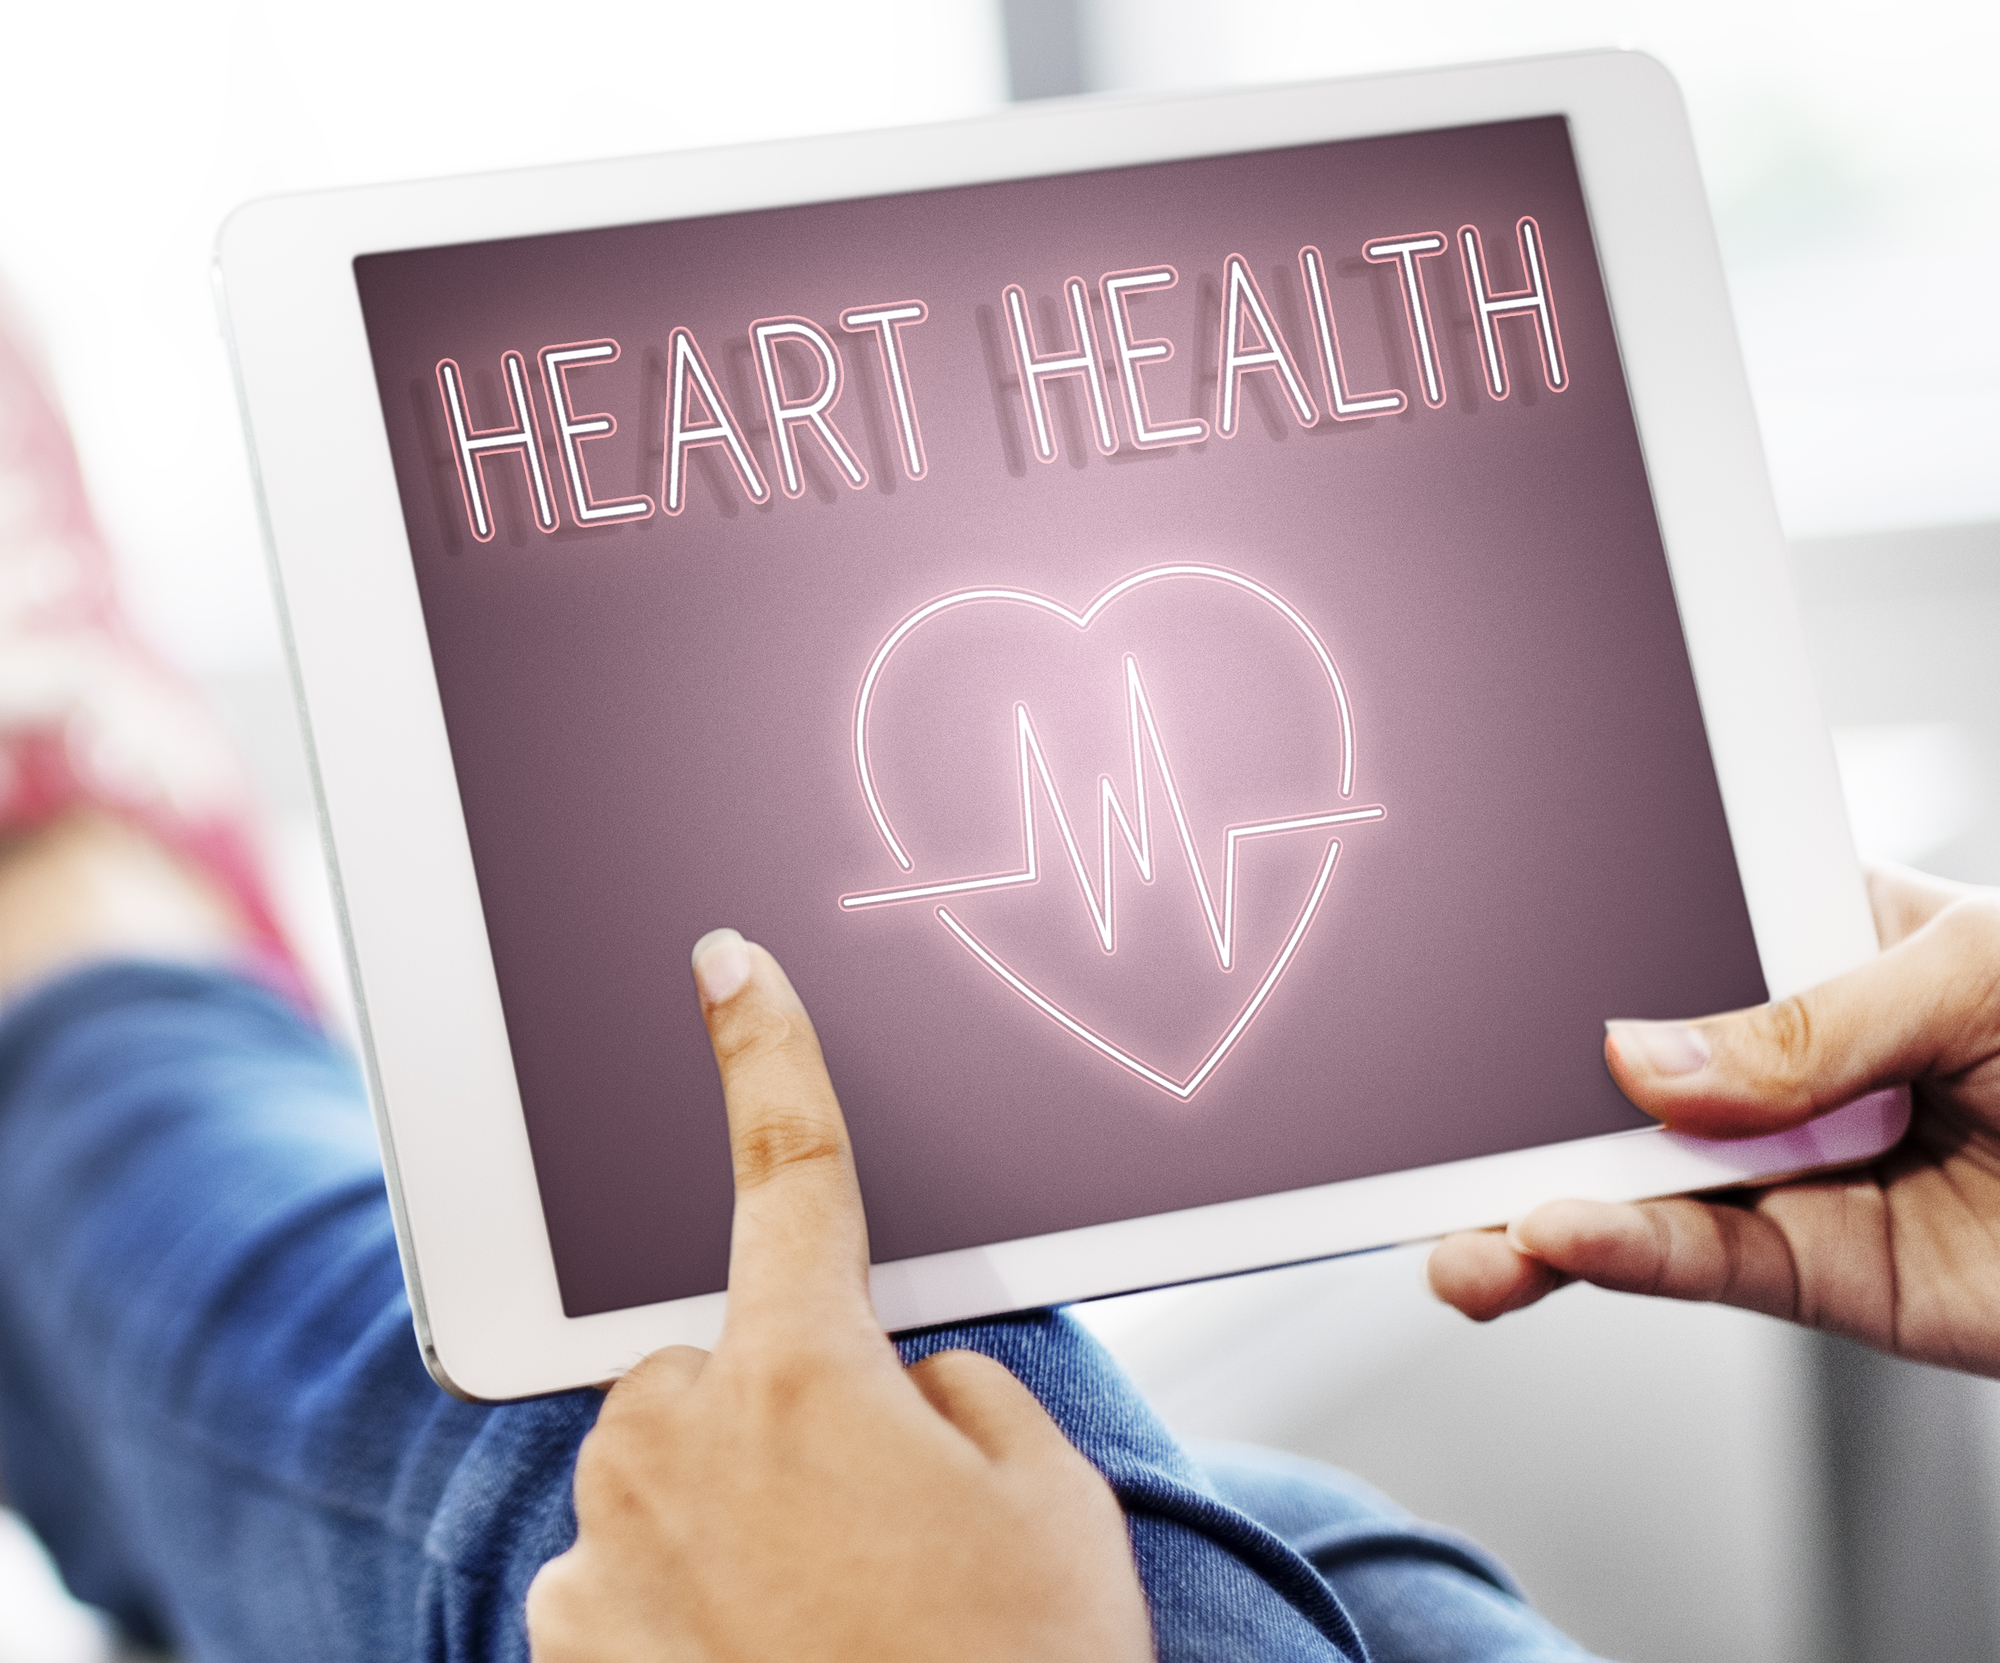 February is American Heart Month, a good reminder to have your ticker checked on an annual basis and practice healthy heart behavior all year long.